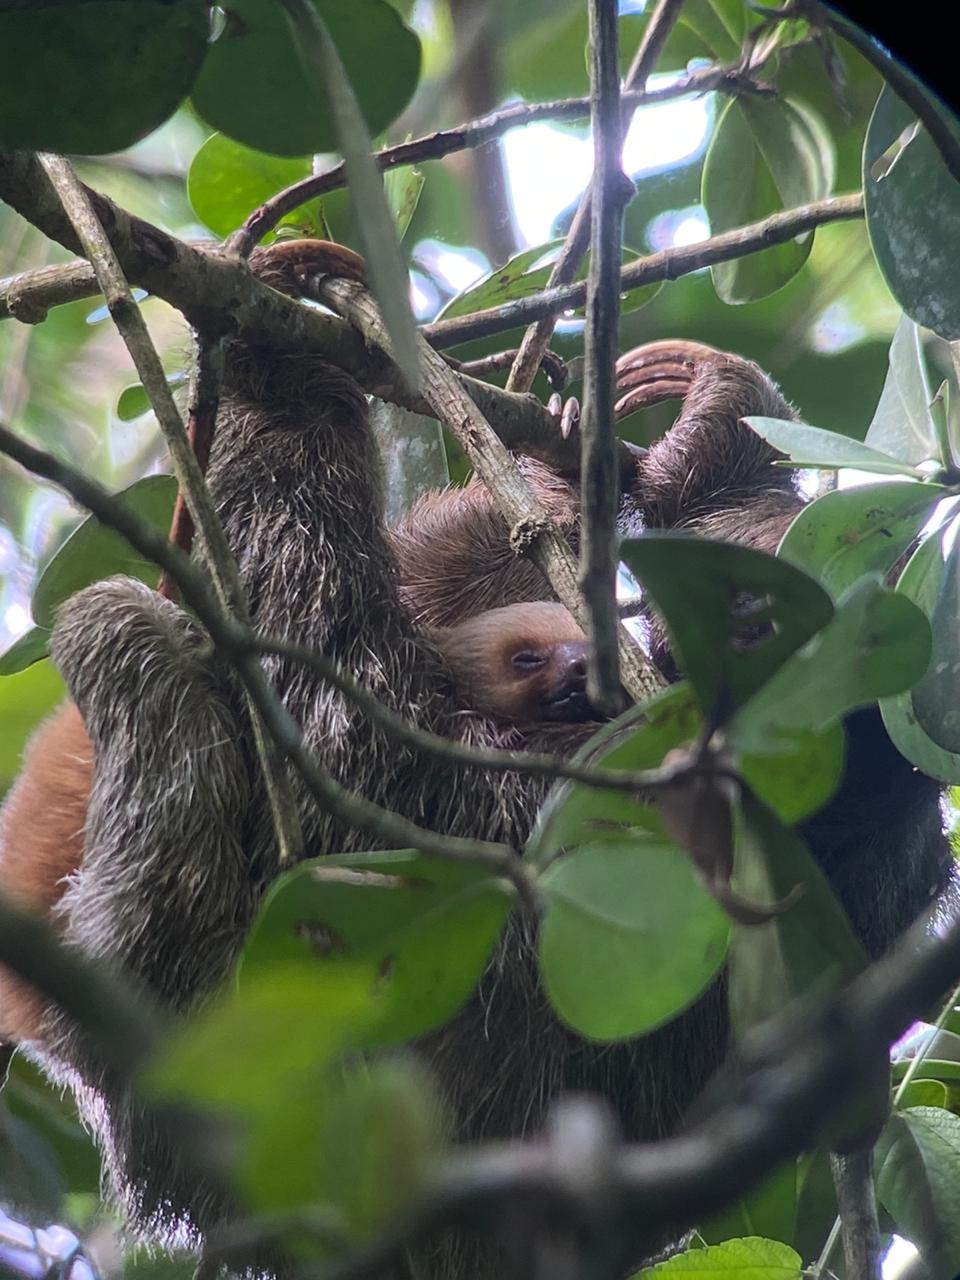 Three-fingered sloth 'adopts' a two-fingered sloth baby!